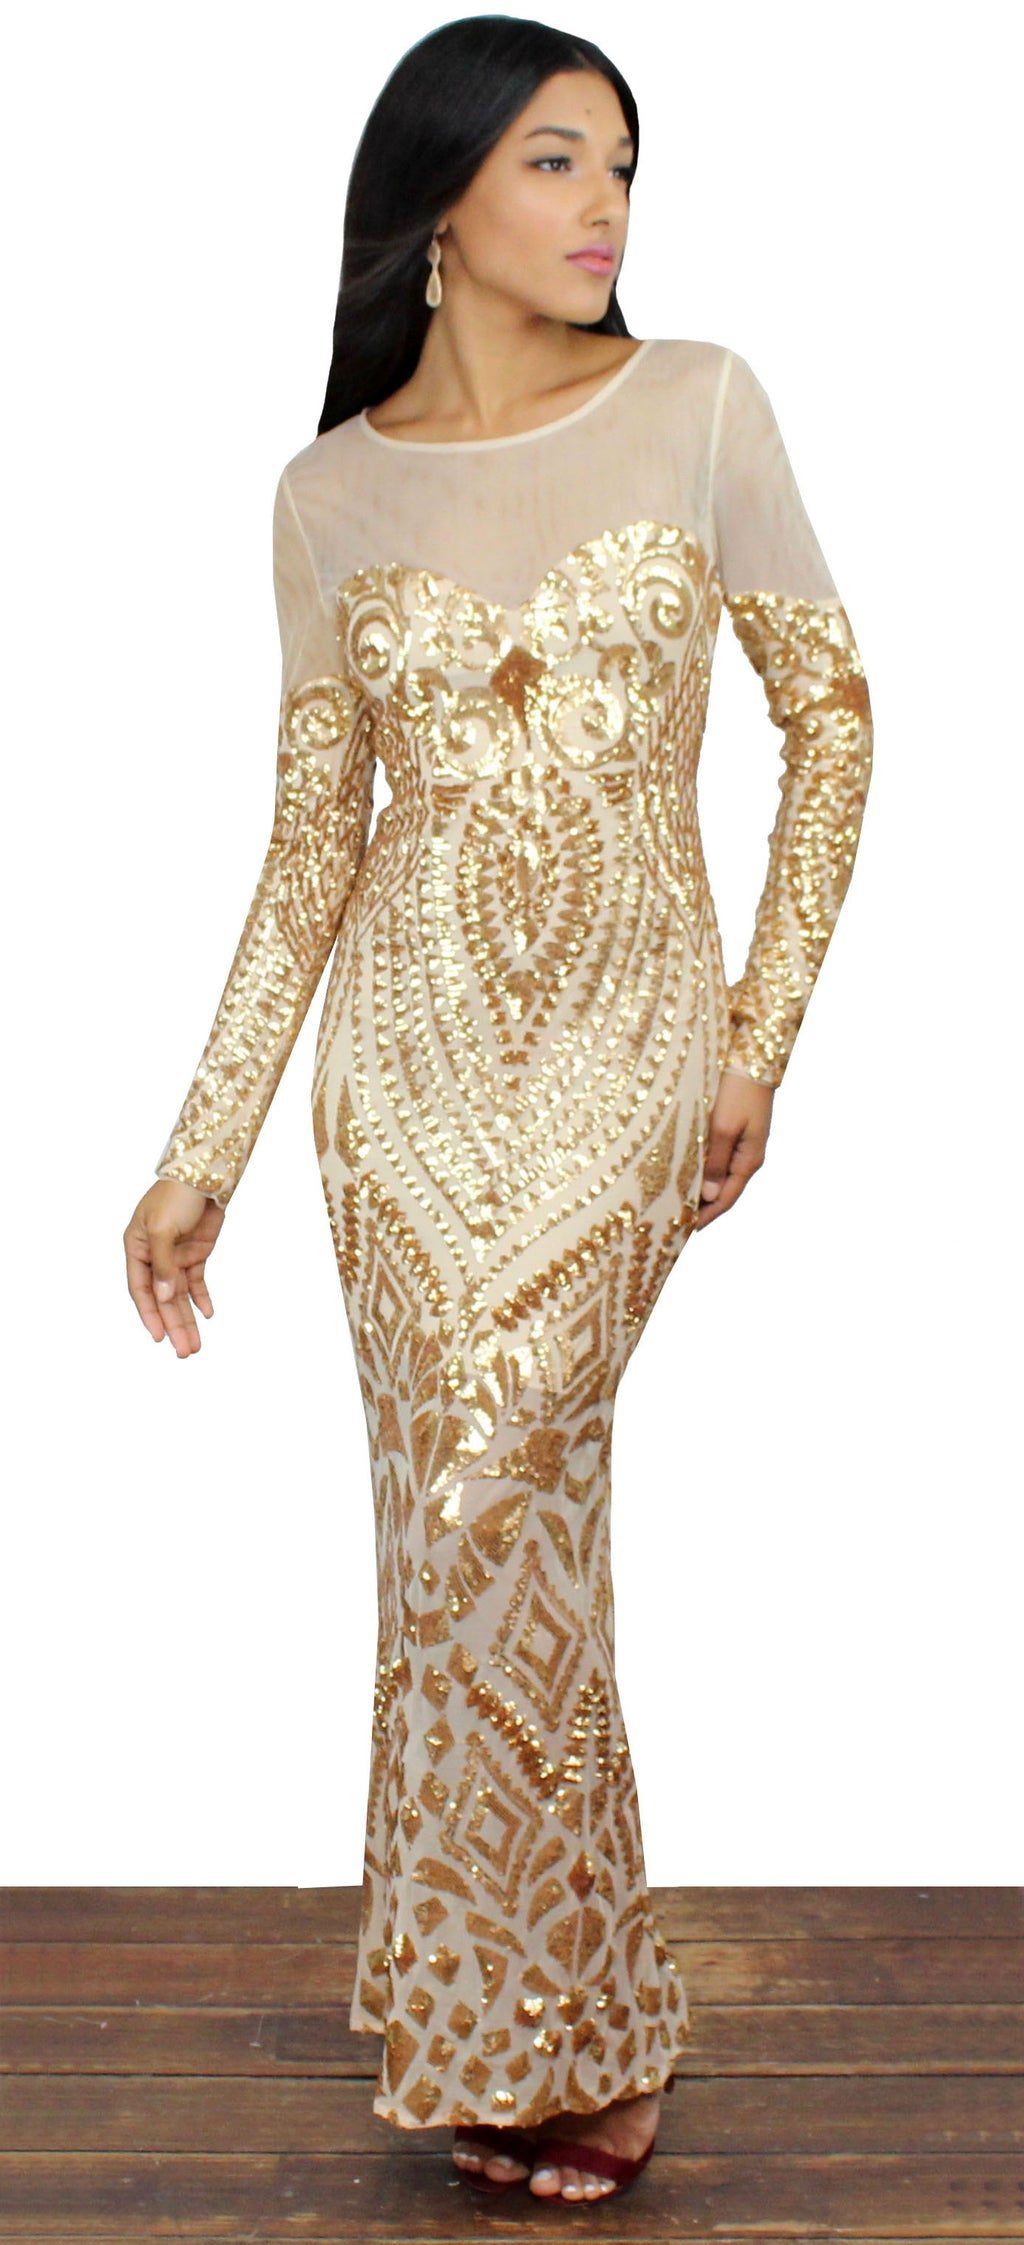 This is the Golden Dress Sequins Midi Dress